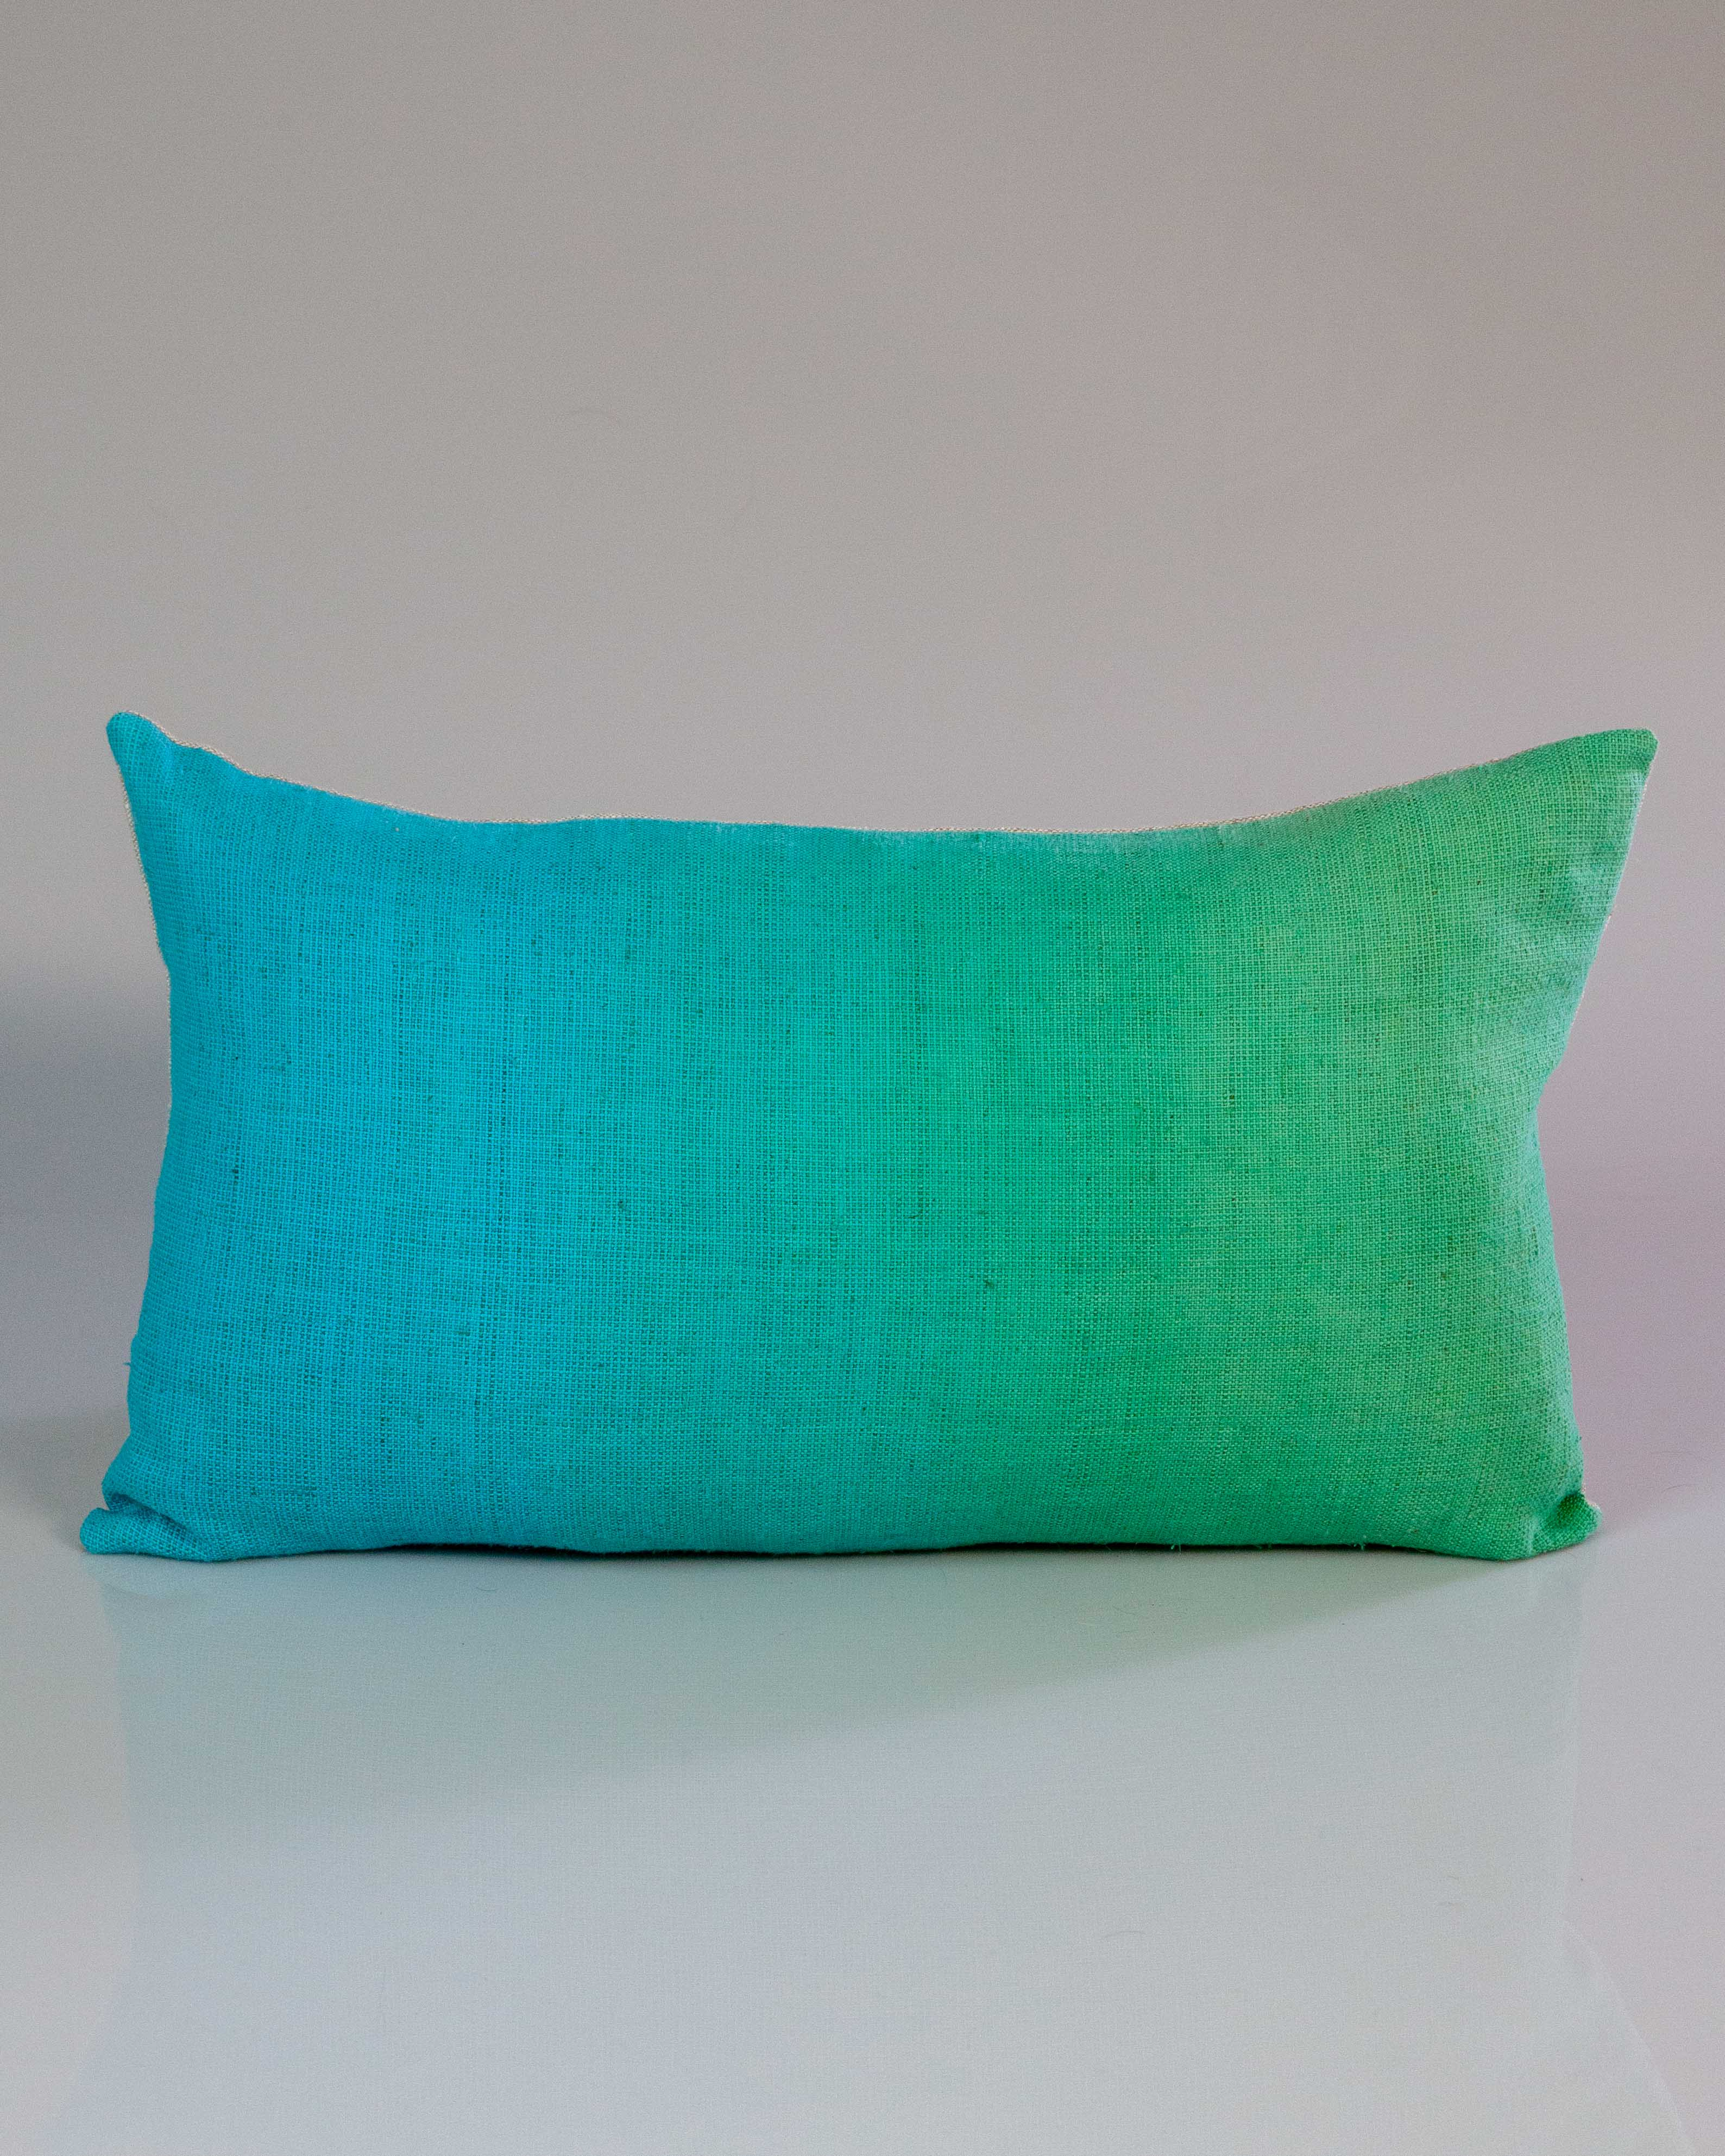 Hand-Painted Vintage Linen Pillow - Summer Aqua